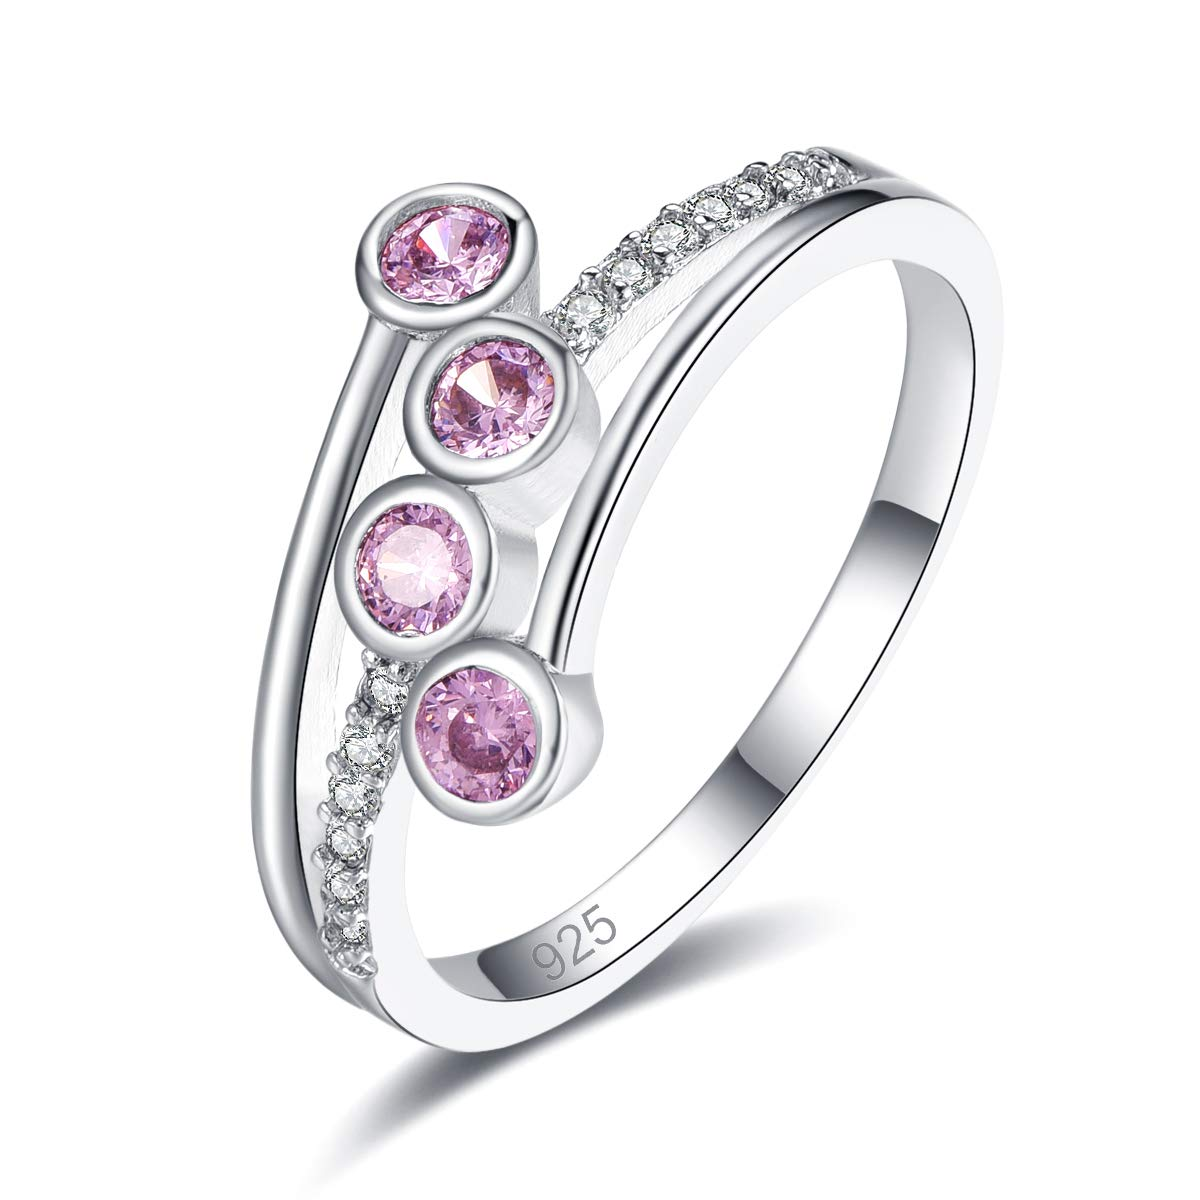 Veunora 925 Sterling Silver Plated Lab-Created Promise Proposal Engagement Wedding Rings for Women Girl